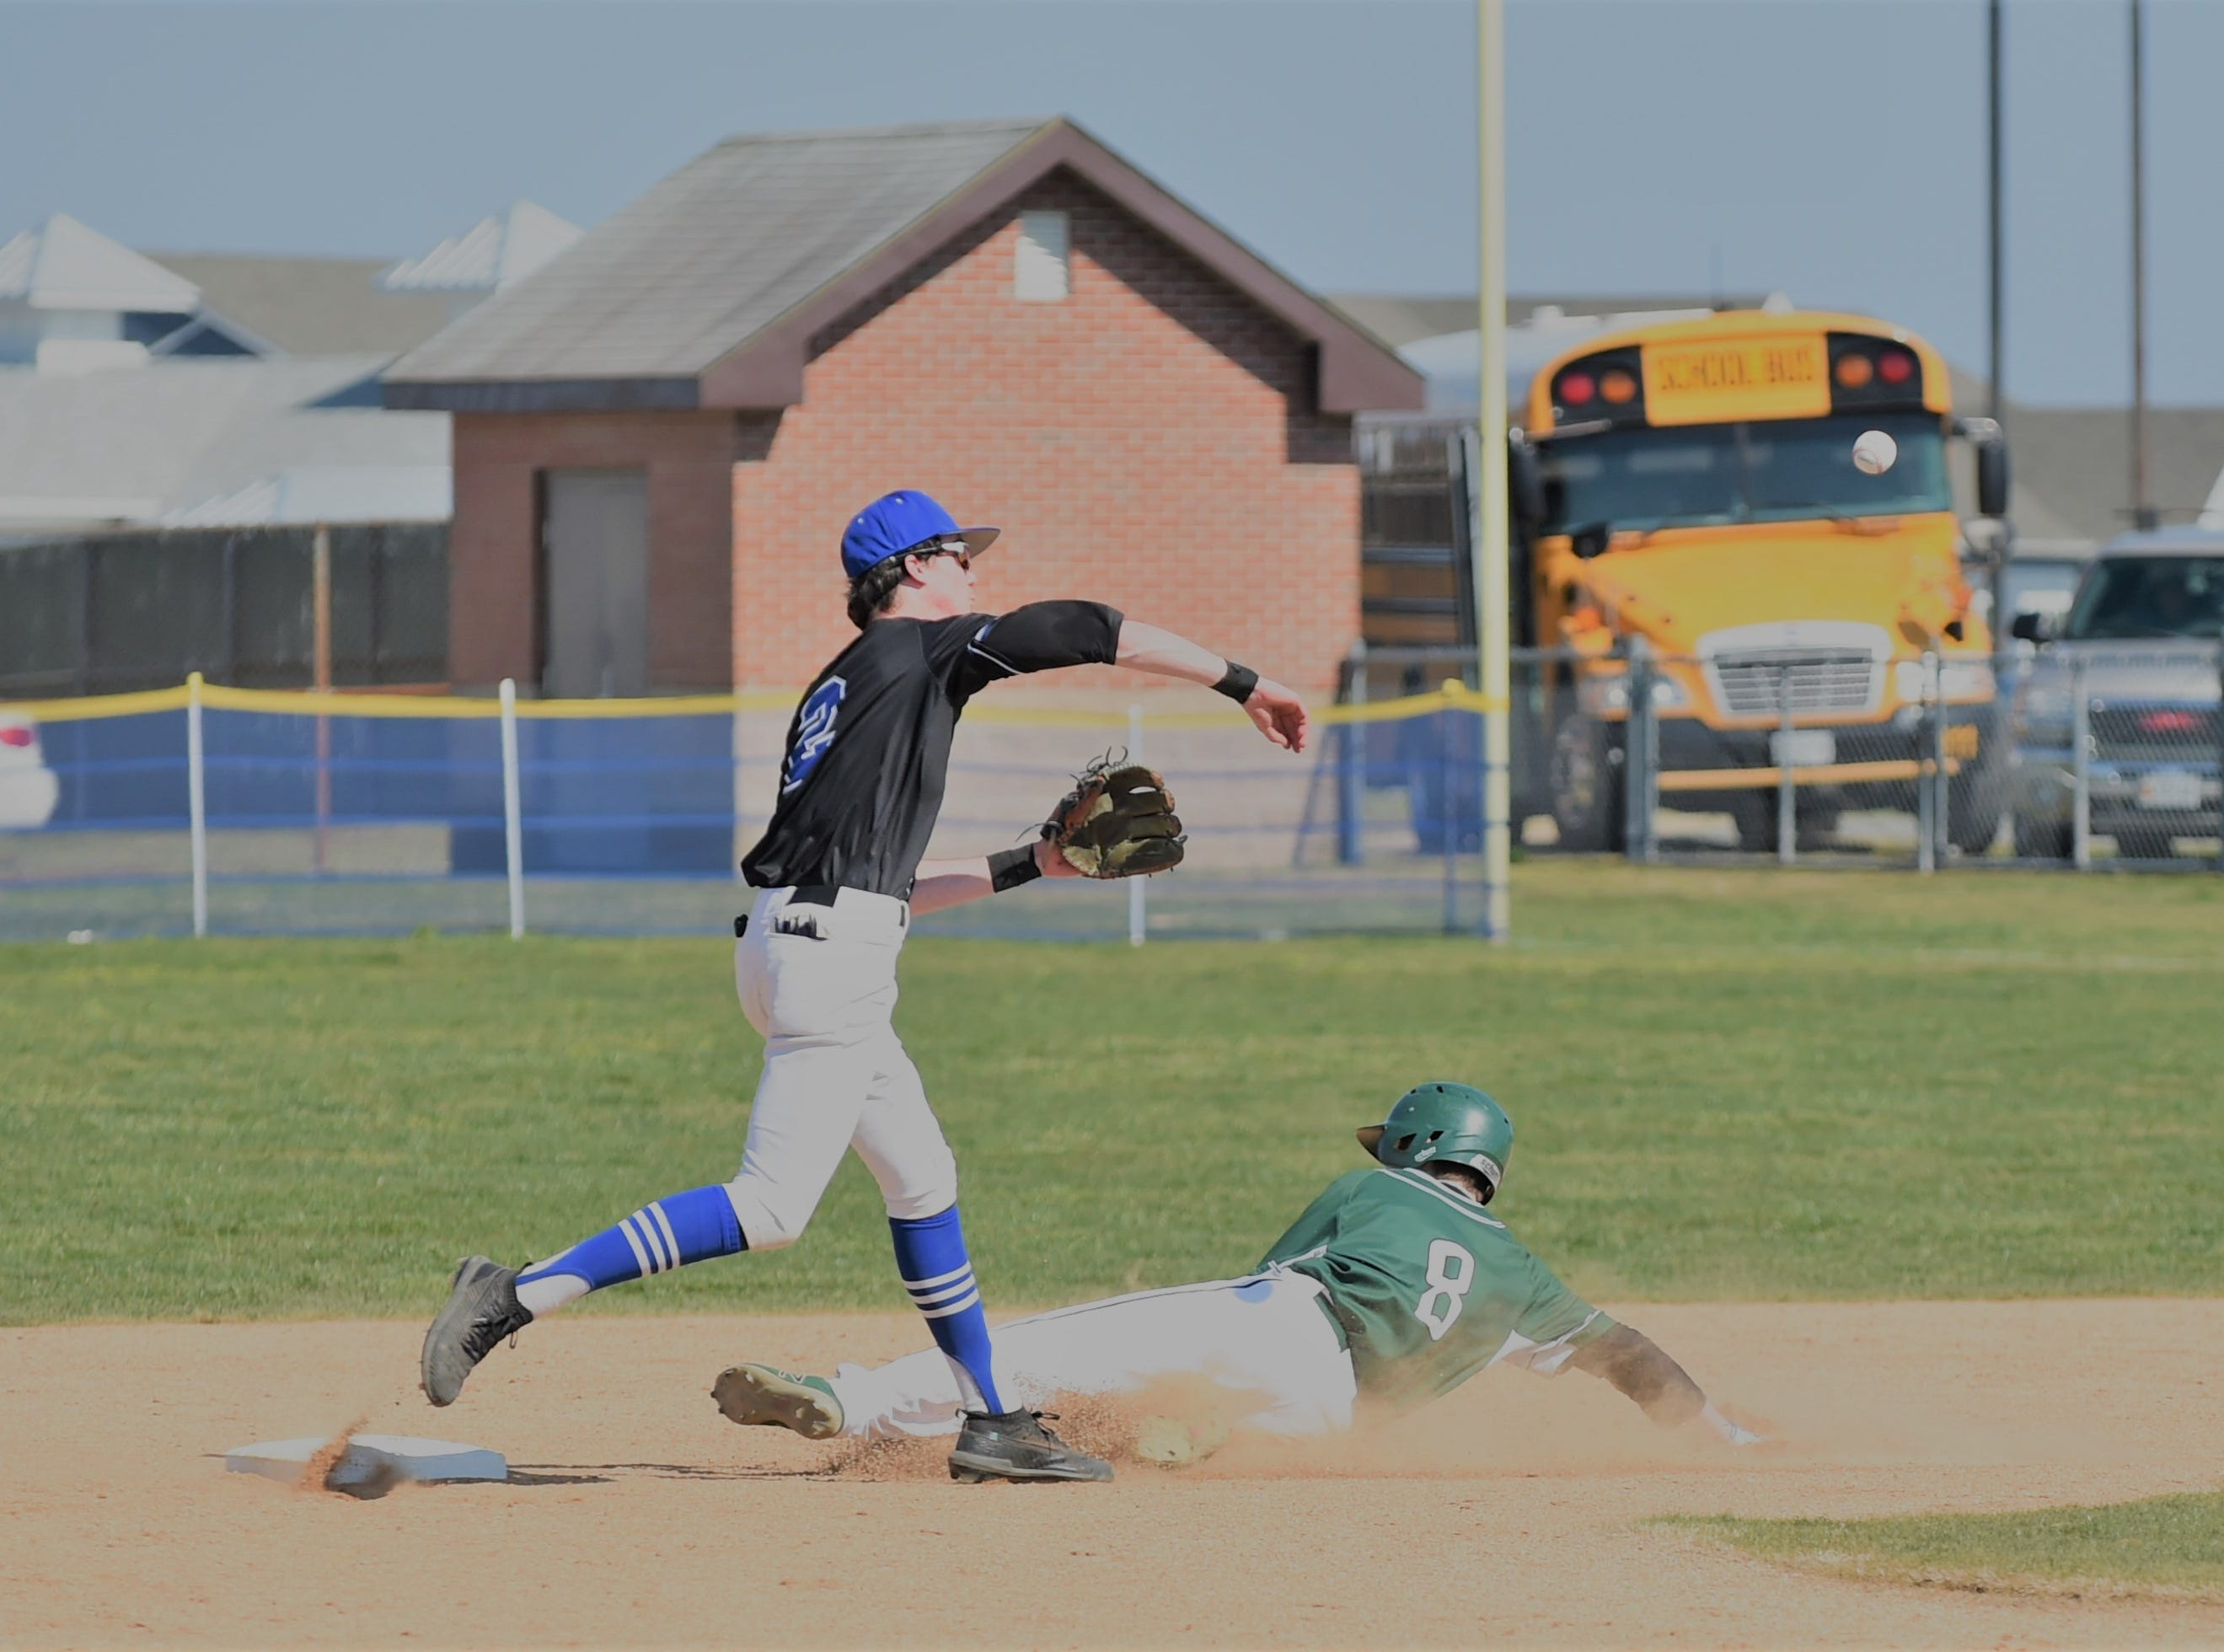 Stephen Decatur's Ridge Watson goes for the double play as Parkside's Brady Bailey slides into second on Wednesday, April 3, 2019.